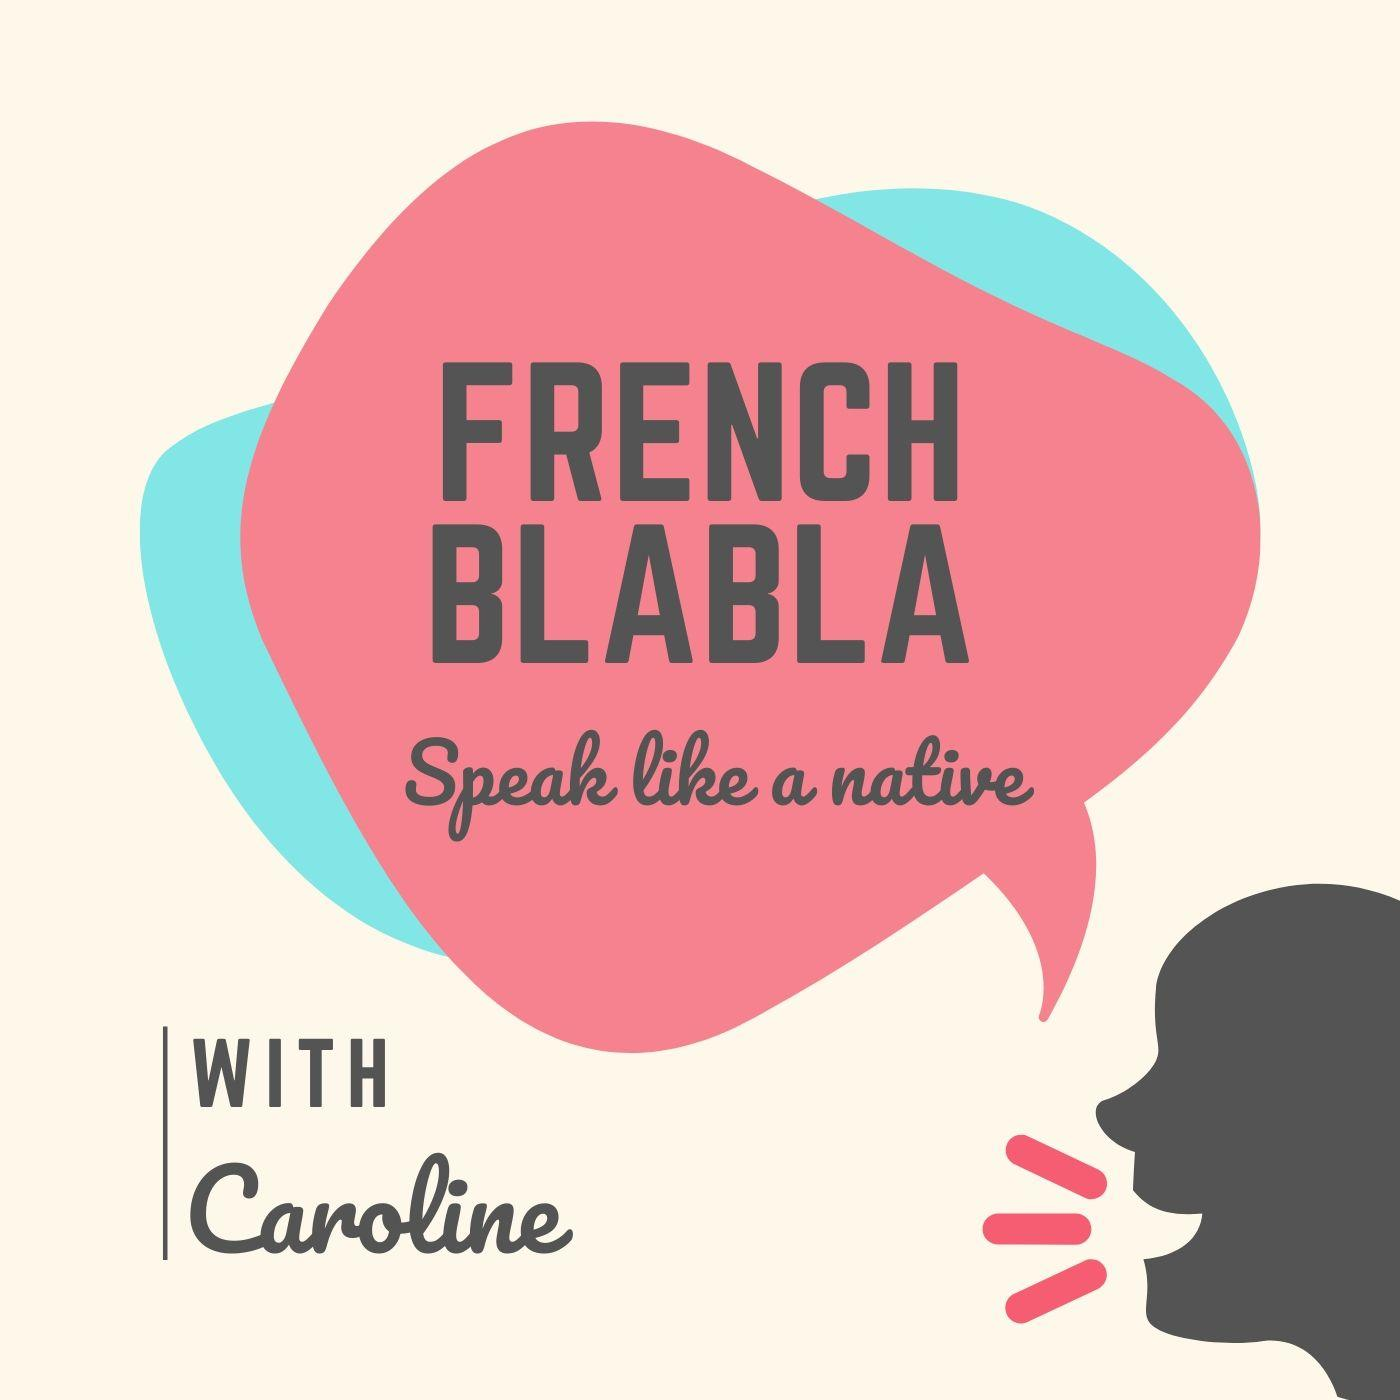 Ep44 - How to choose between Tu and Vous